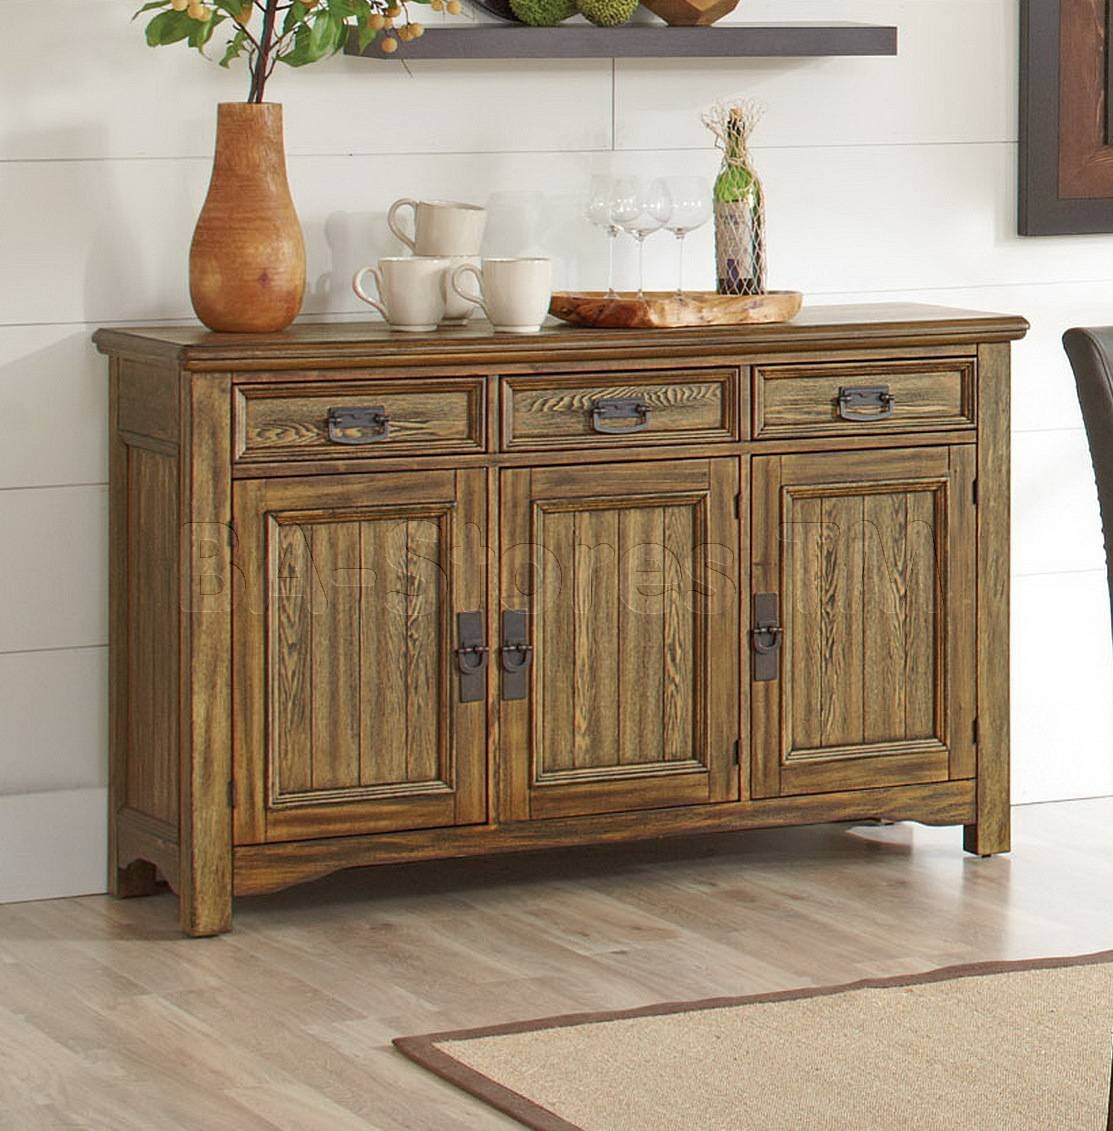 Decor: Rustic Oak Sideboard And Rustic Sideboard throughout Rustic Sideboards (Image 11 of 30)